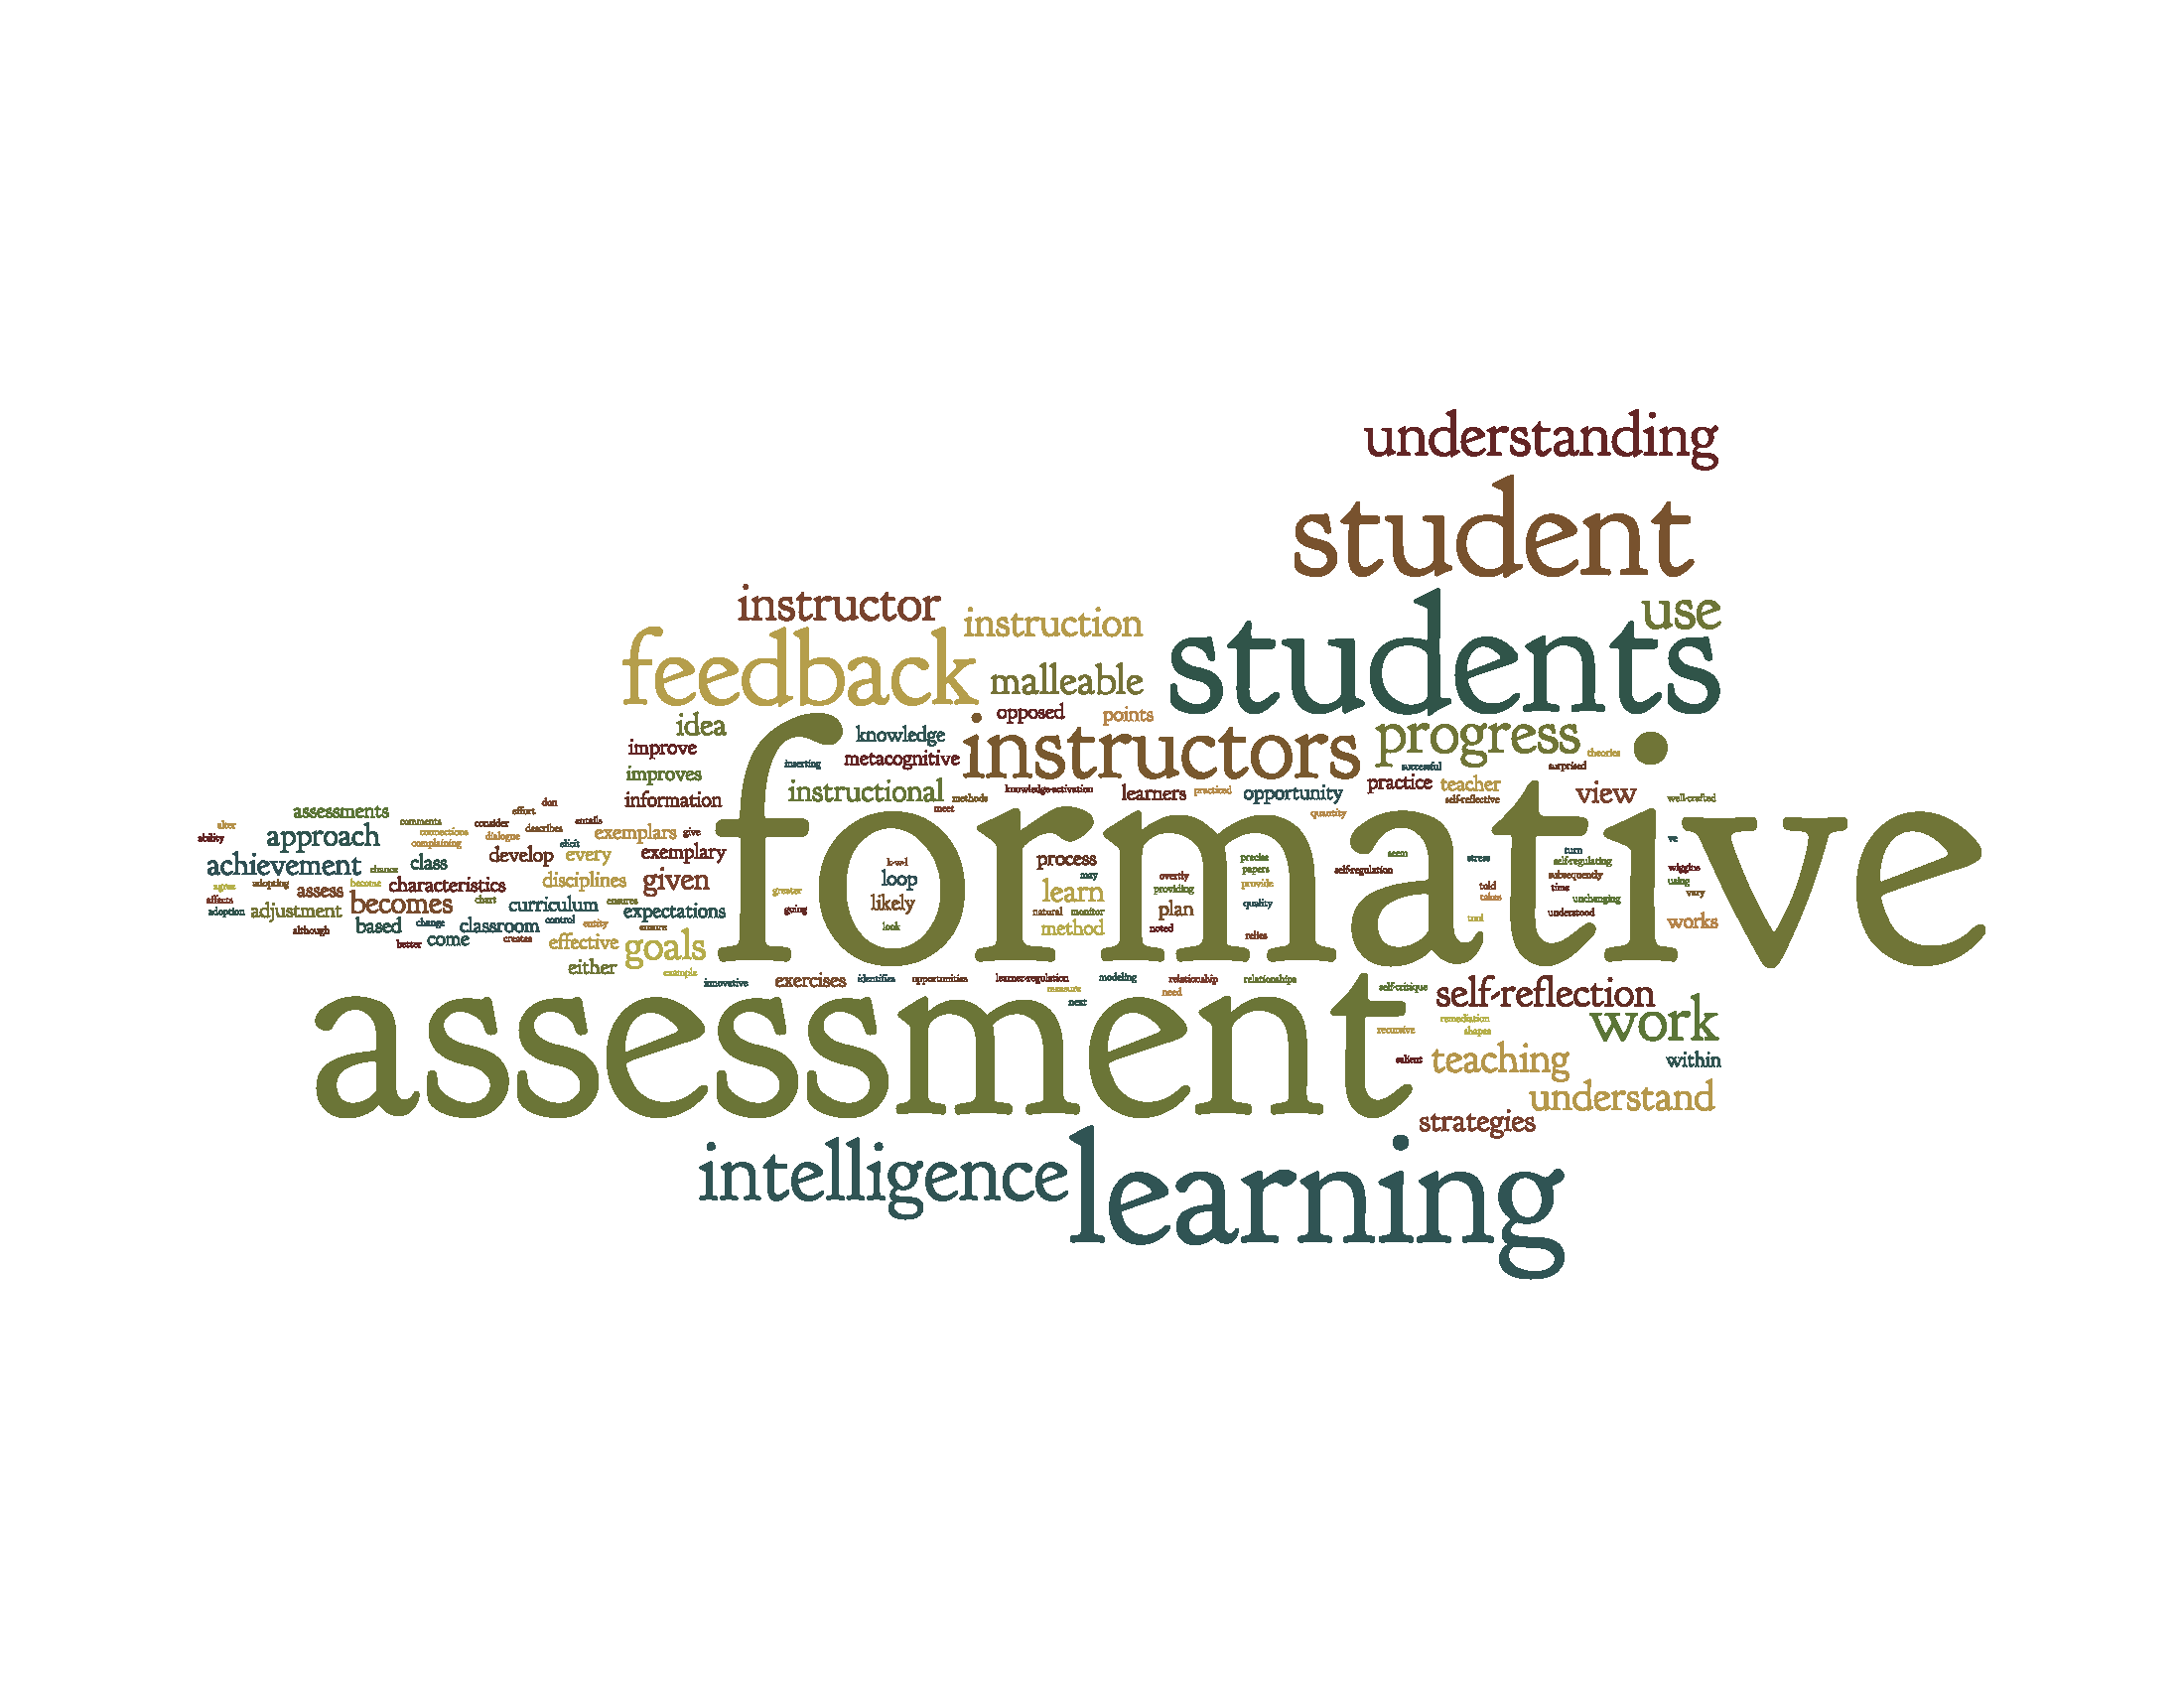 Word Cloud Created From The Text Of The Blog Post